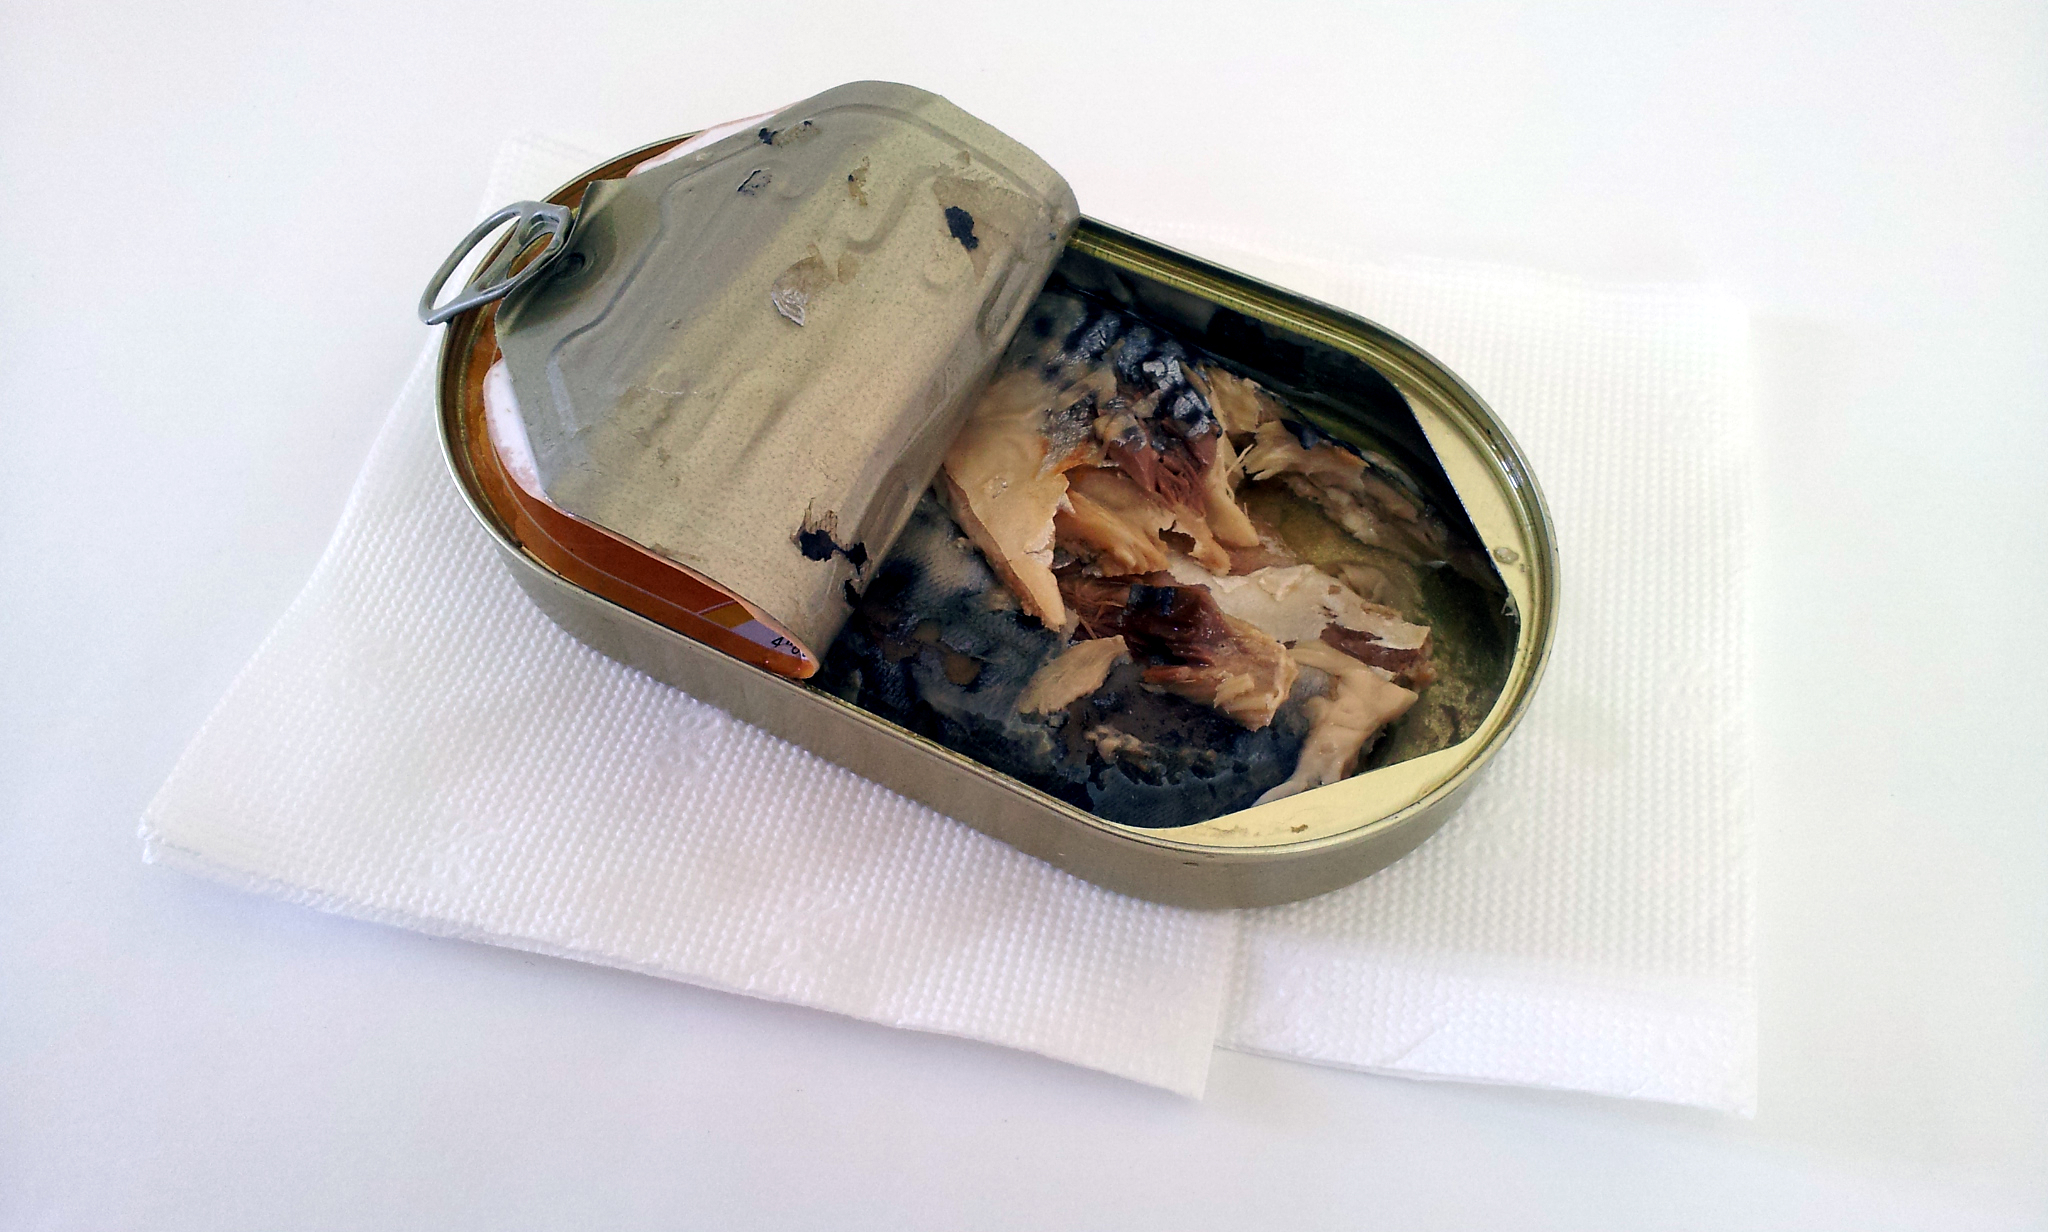 Picture of How to Remove the Sardines From the Canned Sardines